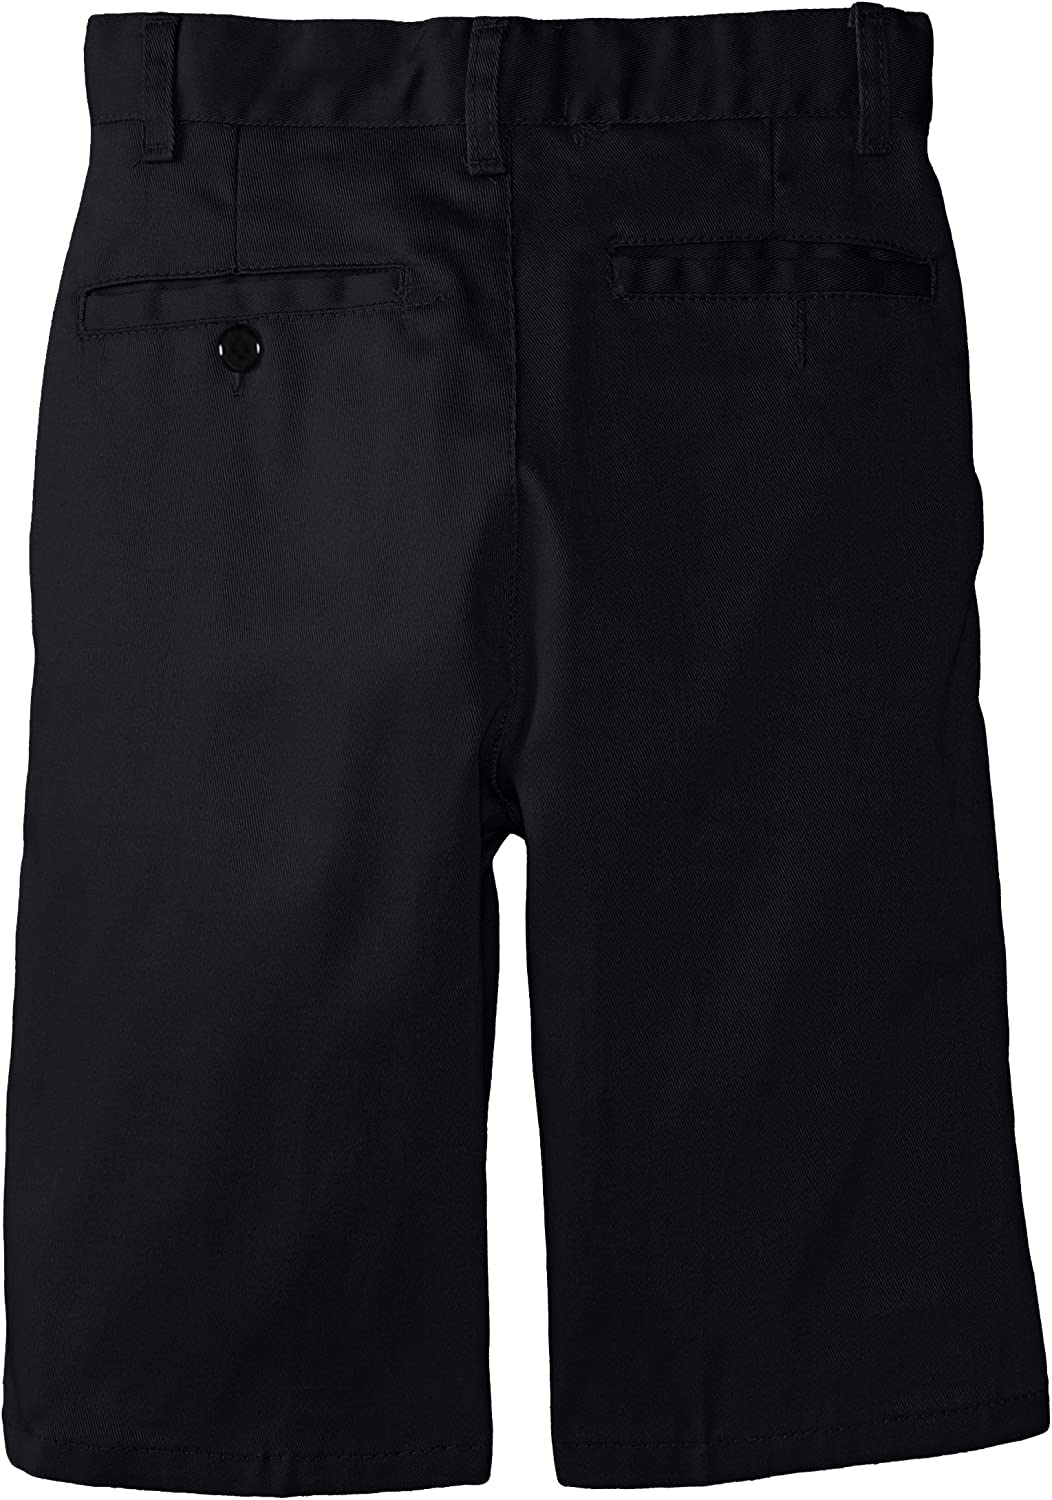 Genuine Boys' Twill Short (More Styles Available)